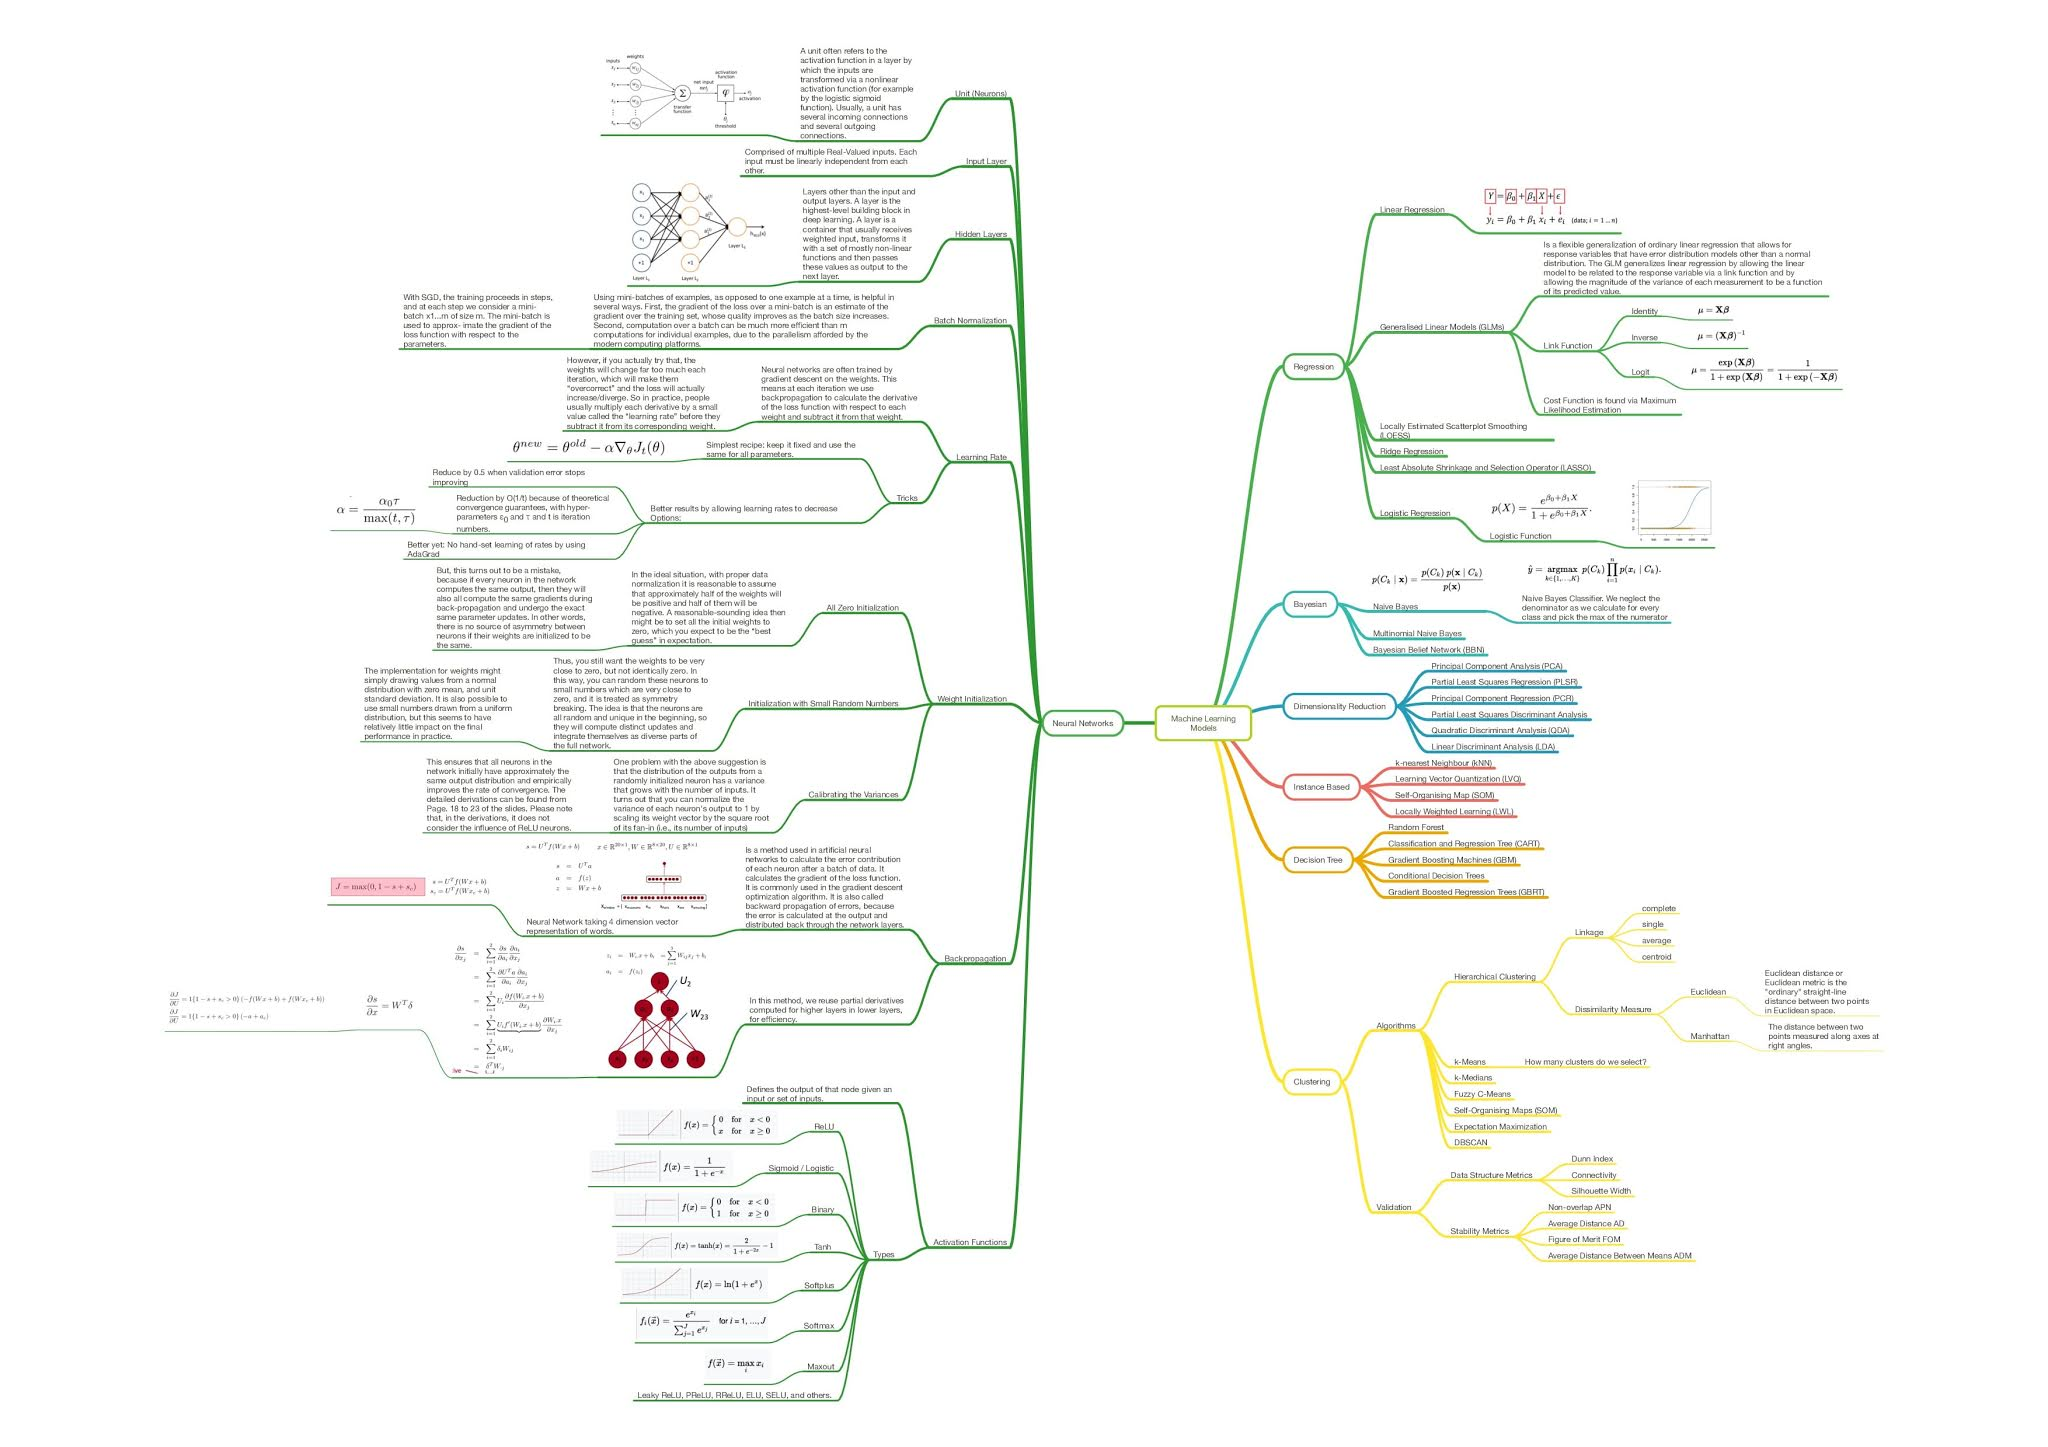 Types of 100+ Machine Learning Algorithms - Download Machine Learning Roadmap 2021